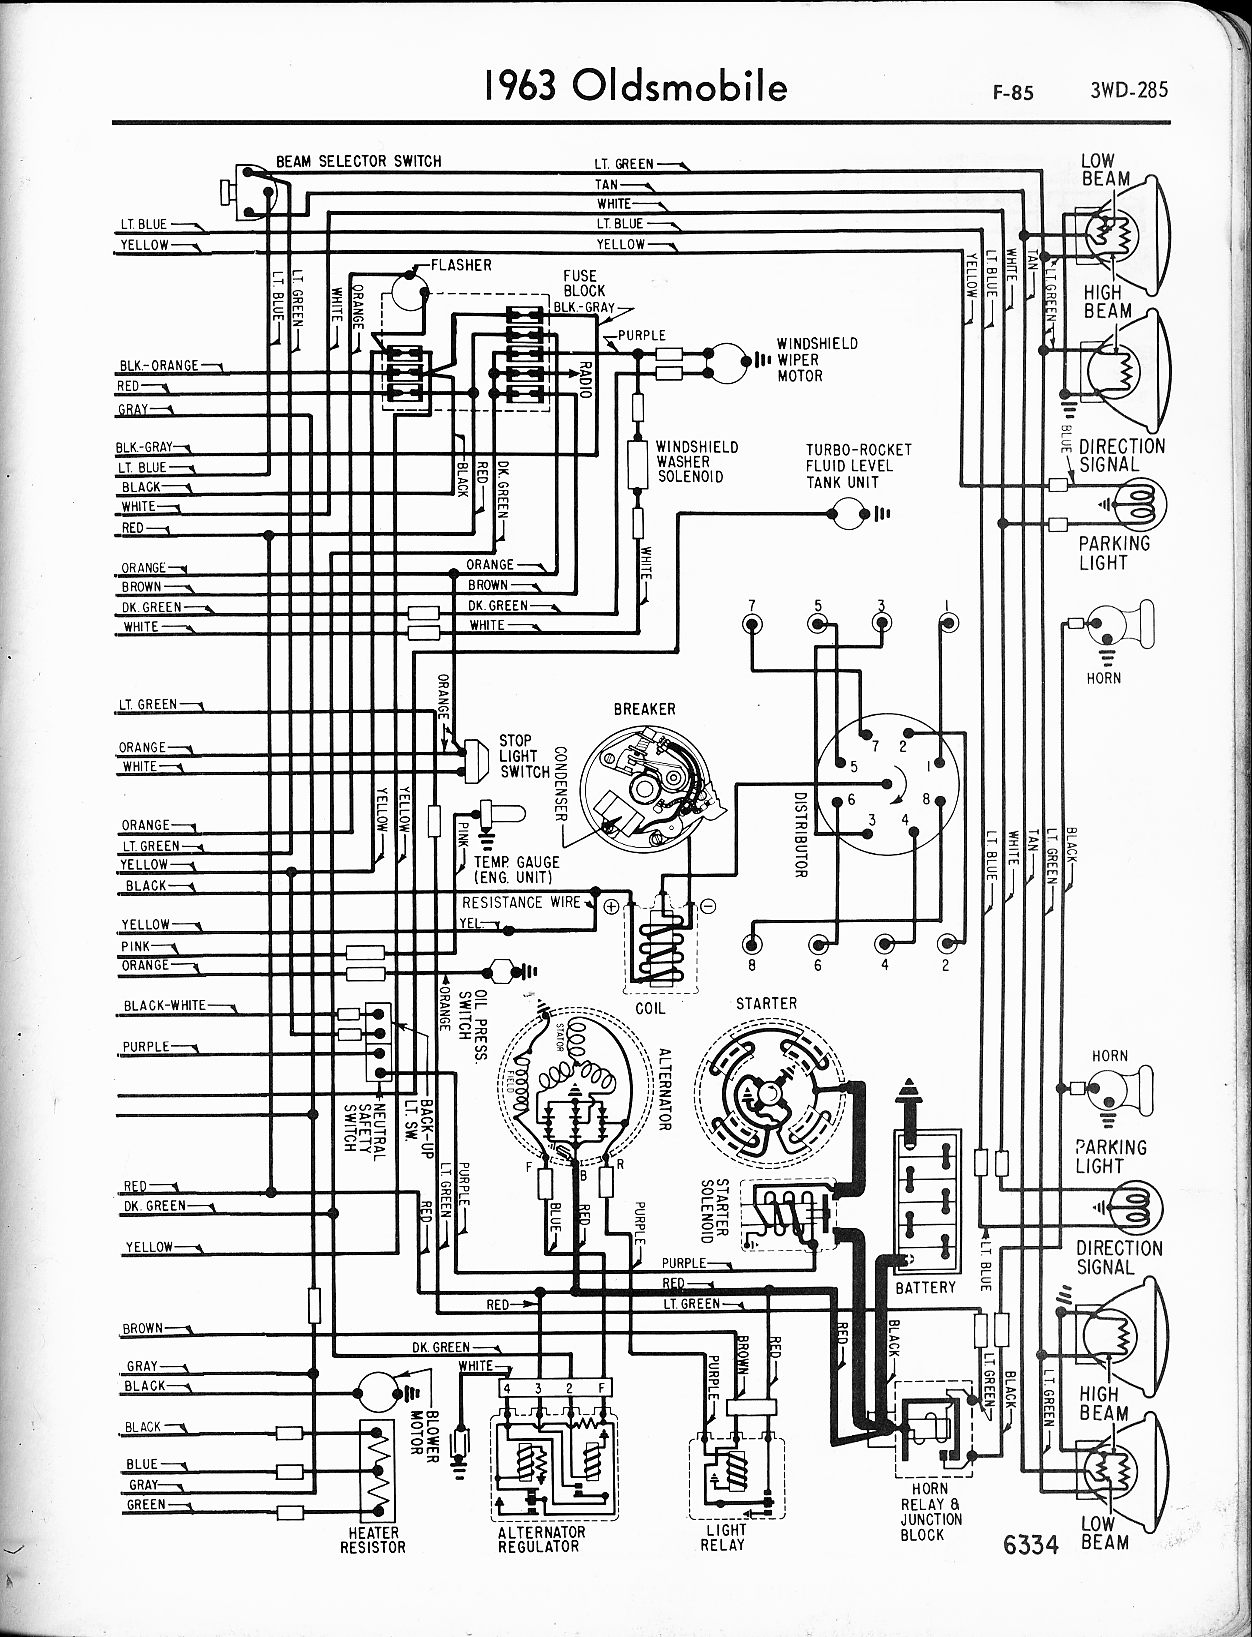 1969 Chevelle Wiring Diagram on Chevy Blazer Wiring Diagram